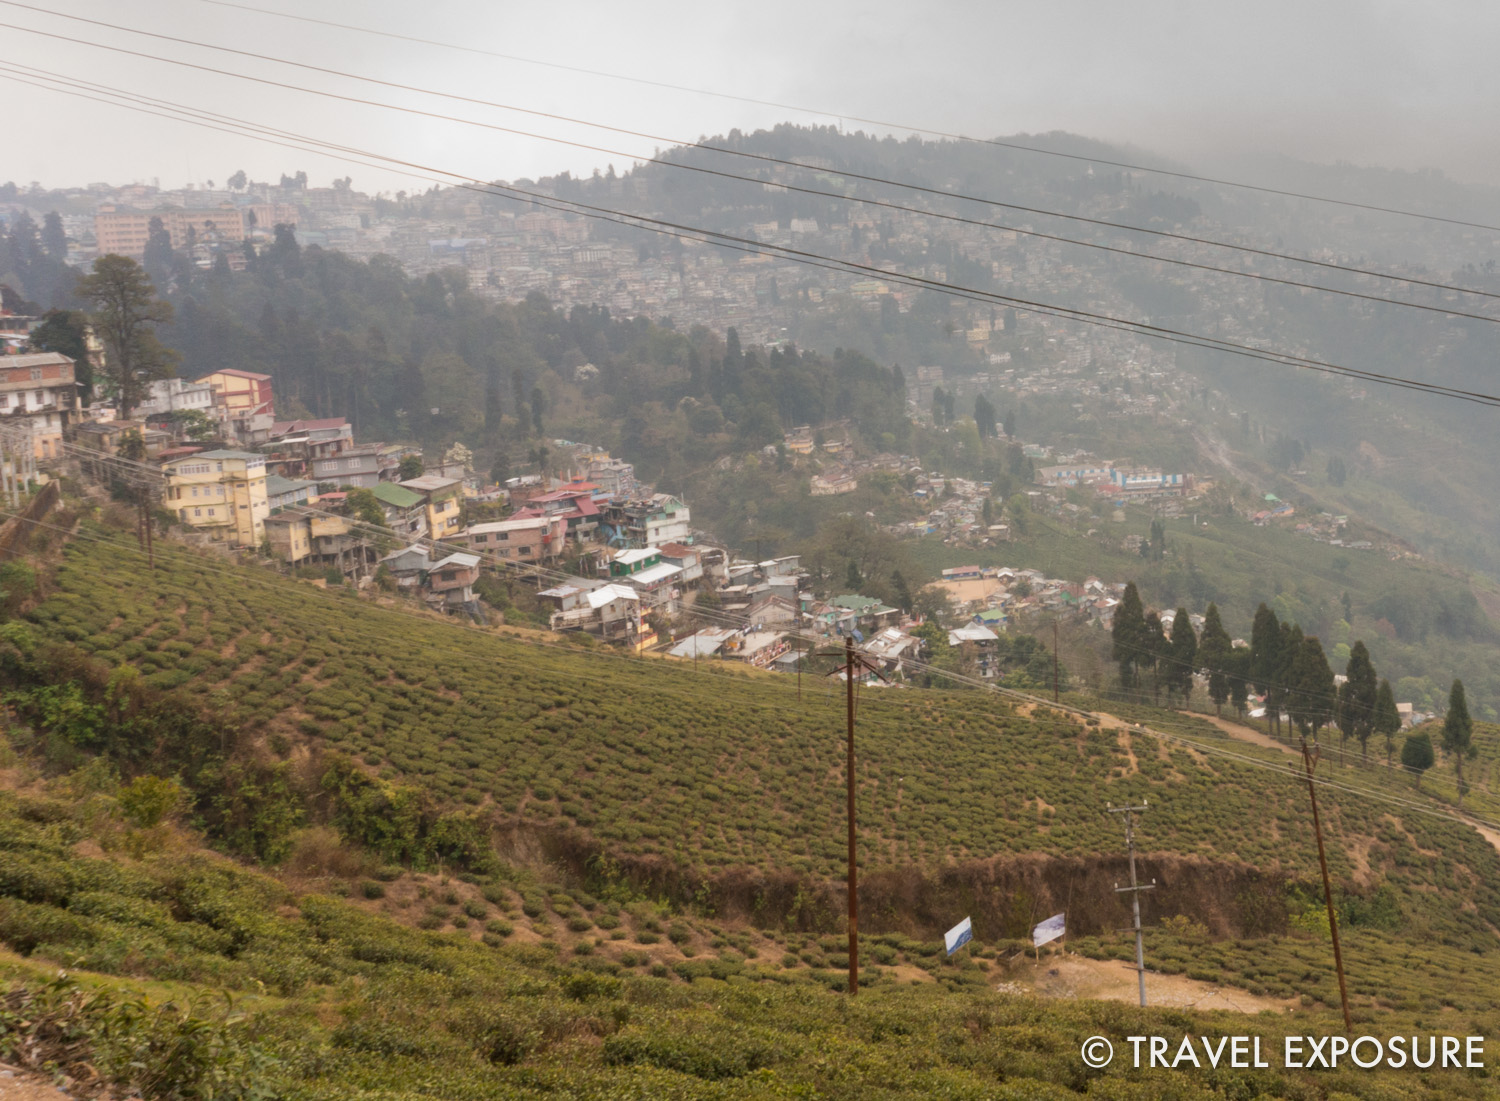 The Happy Valley Tea Estate in Darjeeling. It provides the tea used at Harrods.